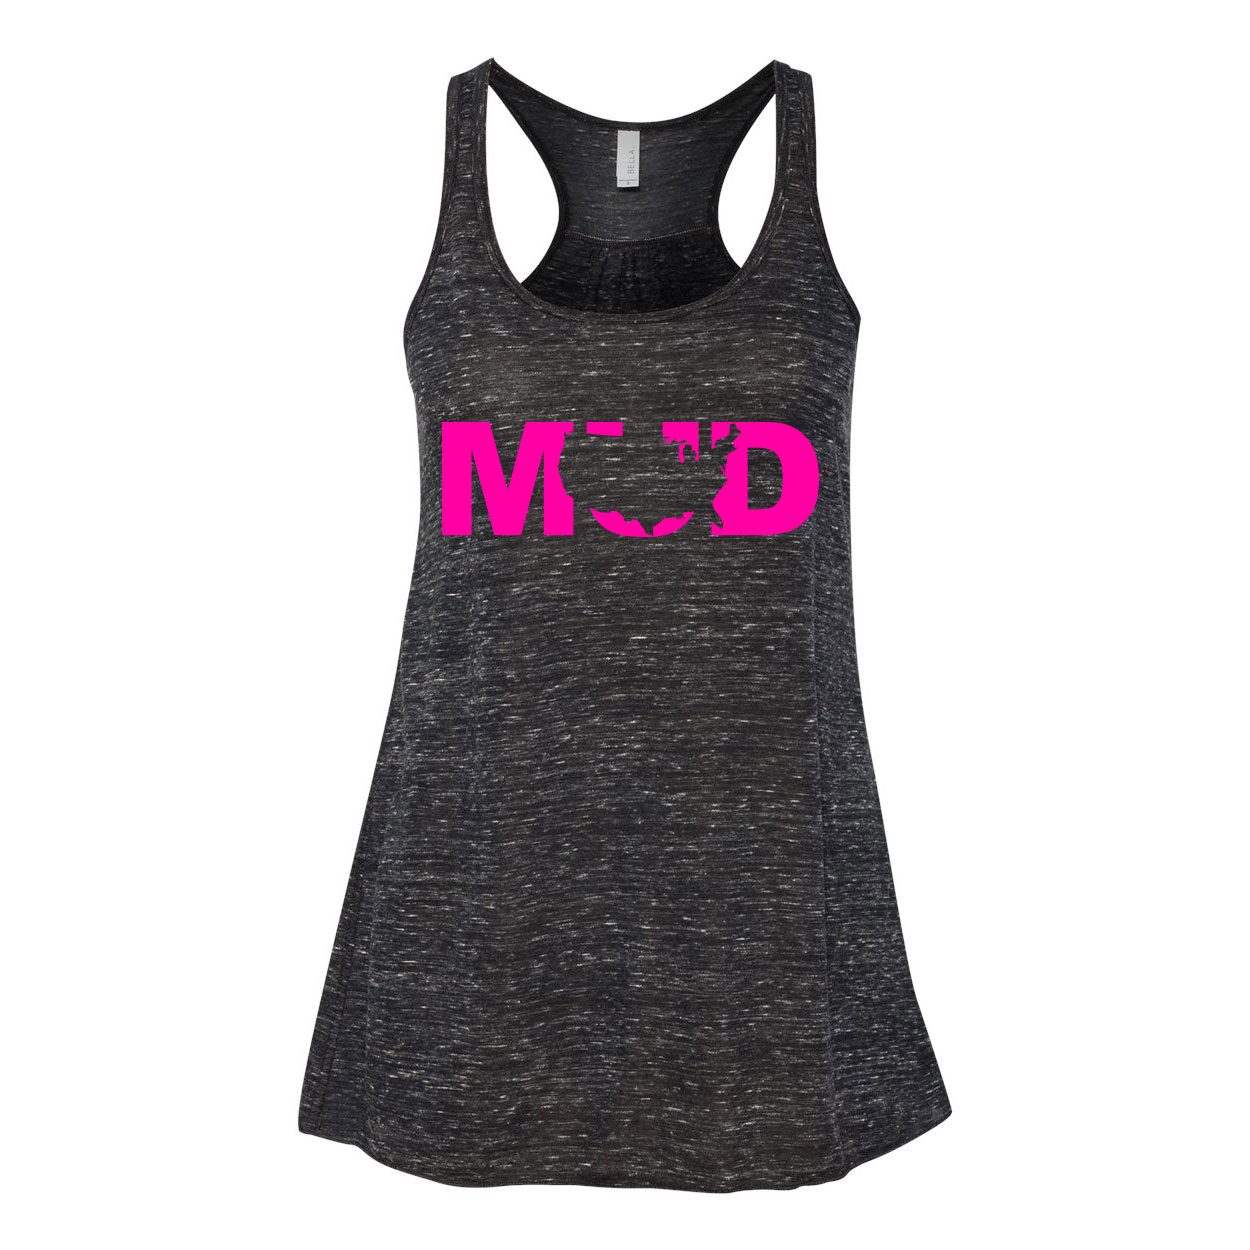 Mud United States Classic Women's Flowy Racerback Tank Top Black Marble (Pink Logo)